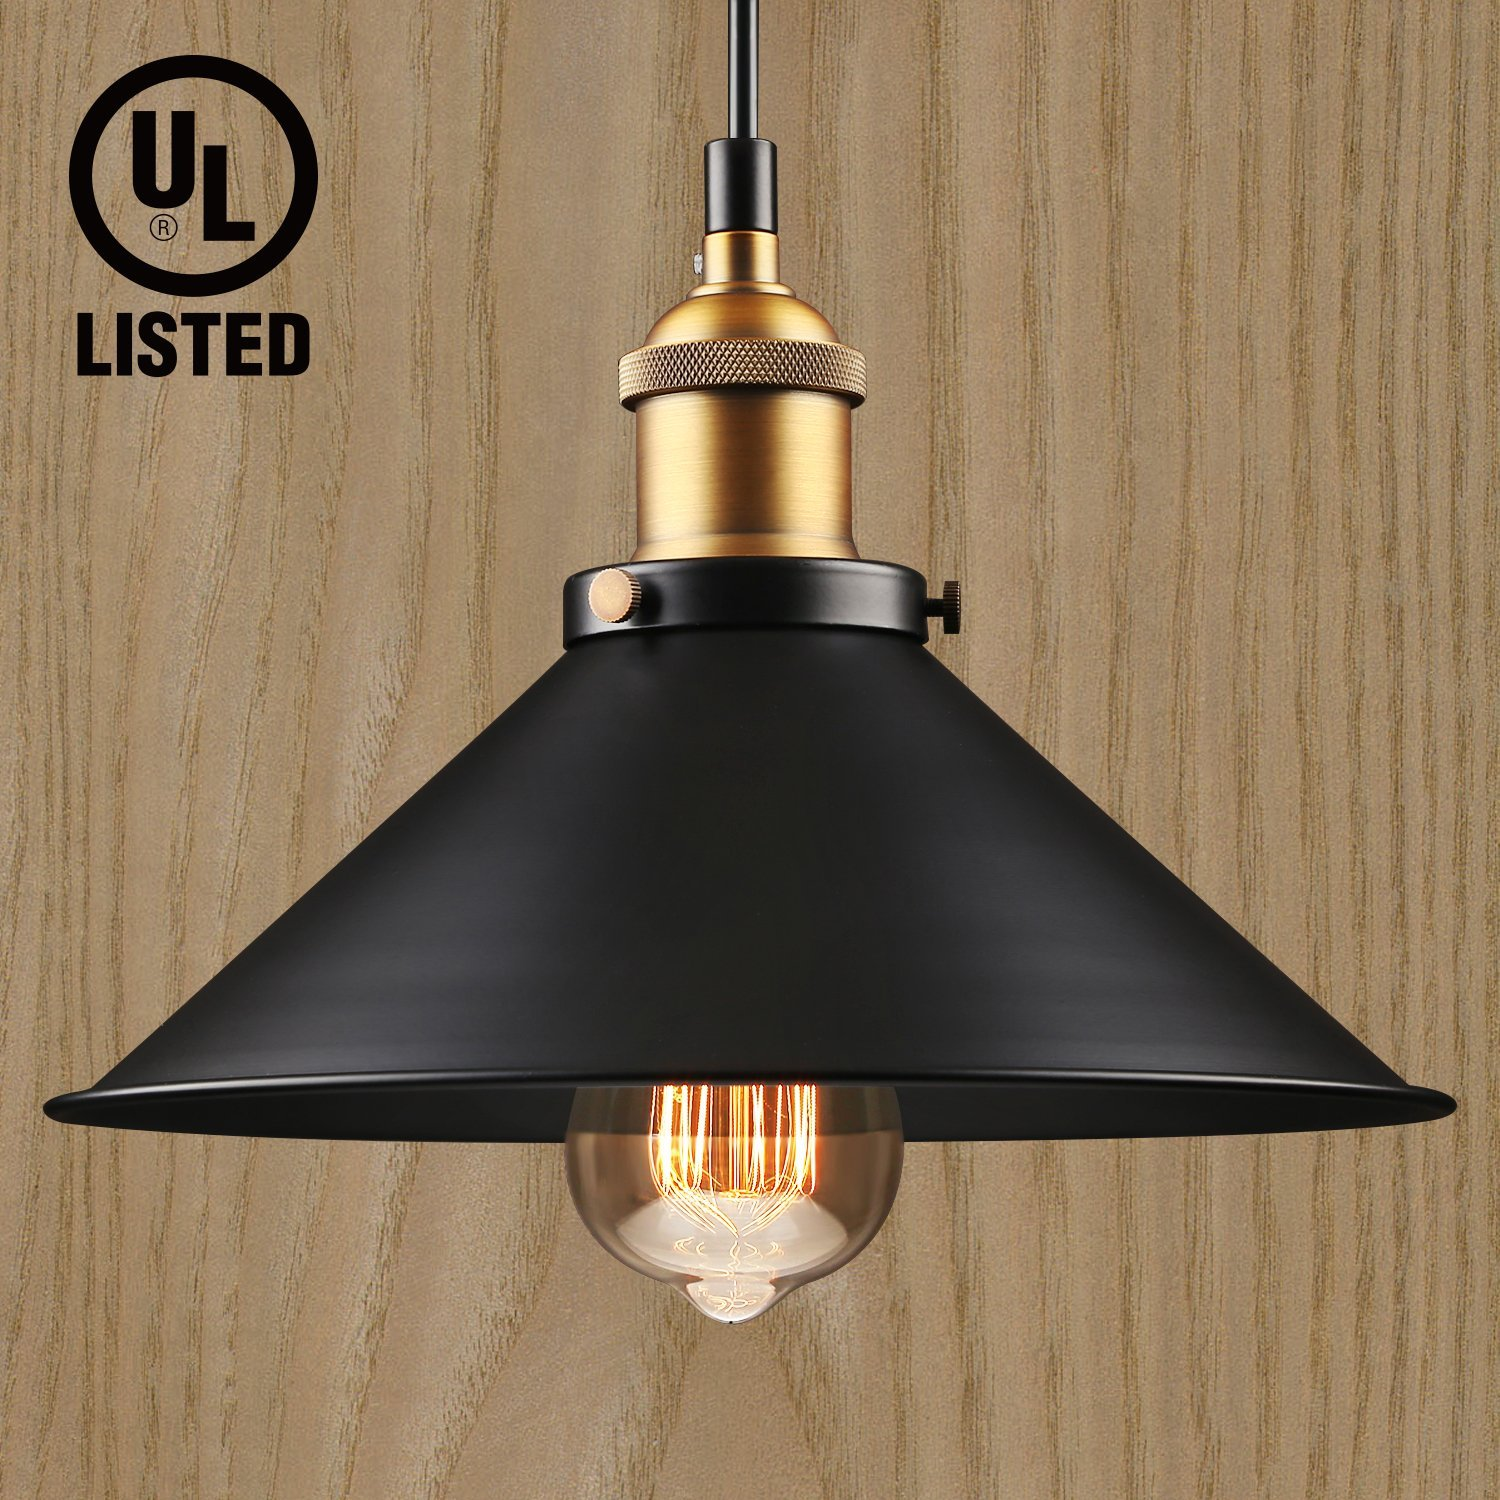 LEONLITE Industrial Hanging Pendant Light, Retro Vintage Style, Matte Black Metal Shade, Exquisite Workmanship, for Dining Room, Bars, Warehouse, E26 Base